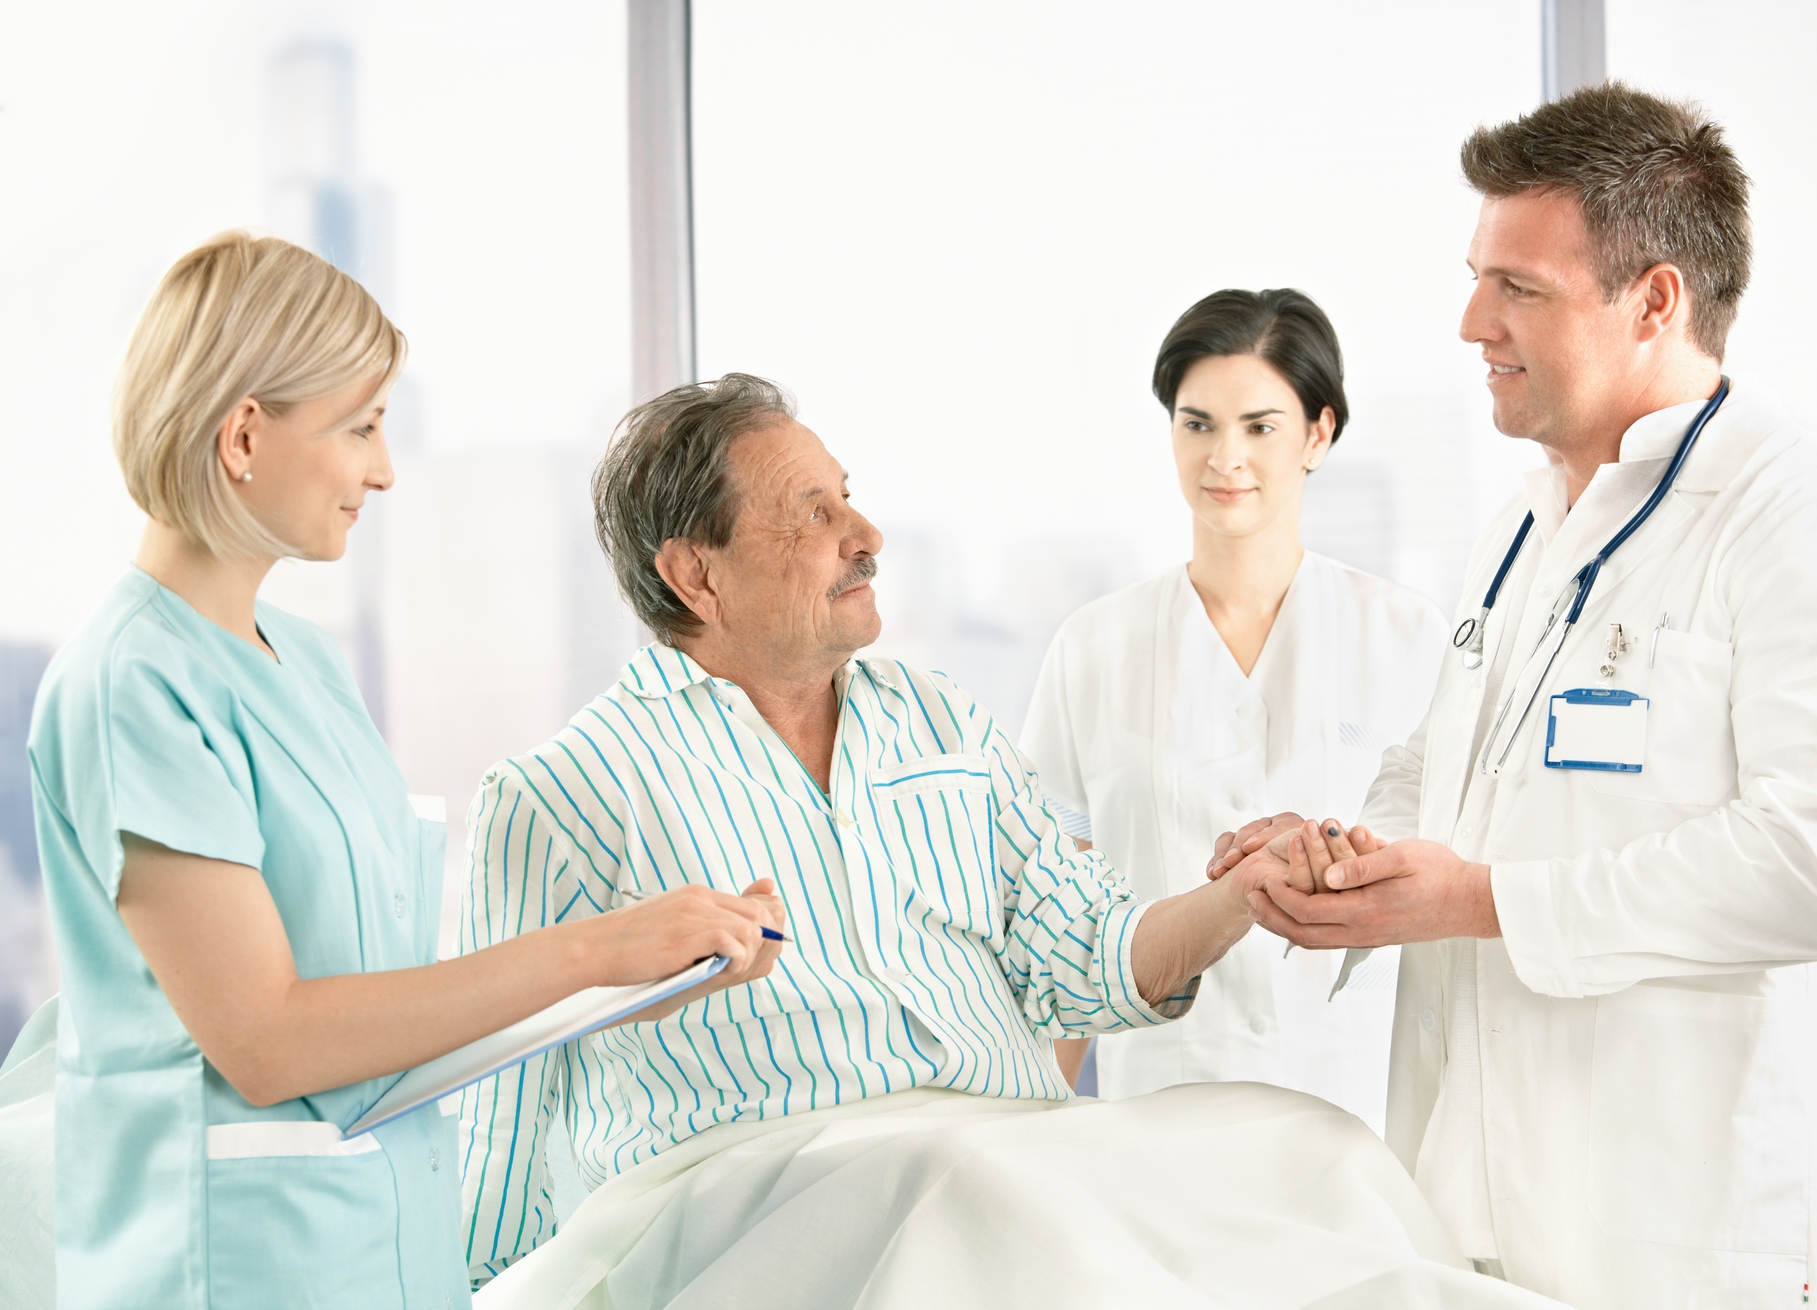 Sick In Hospital Images : Displaying 18> Images For - Sick Person In Hospital...